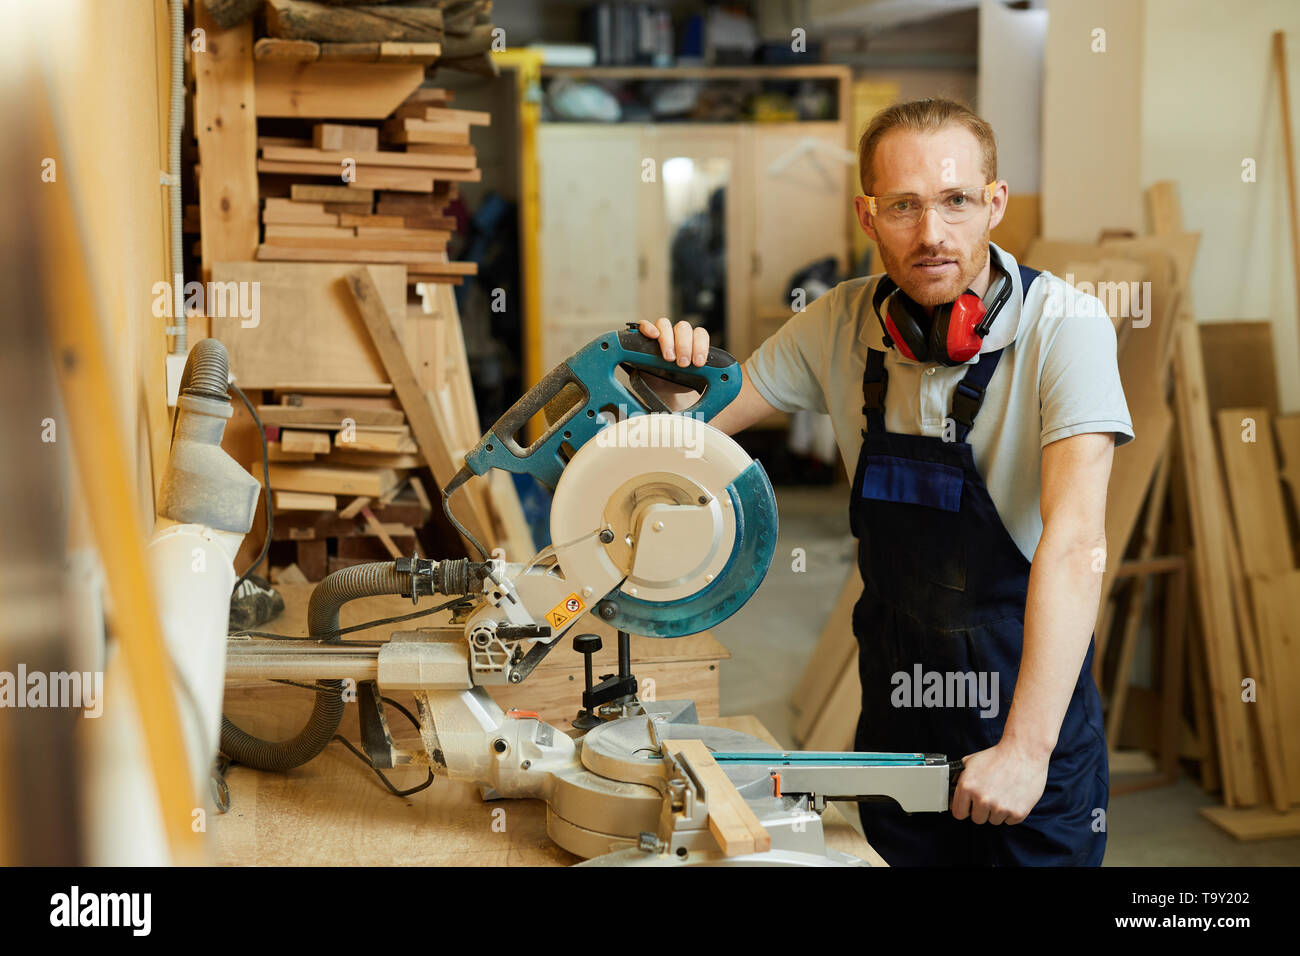 Waist up portrait of carpenter looking at camera while standing by disksaw in joinery, copy space - Stock Image